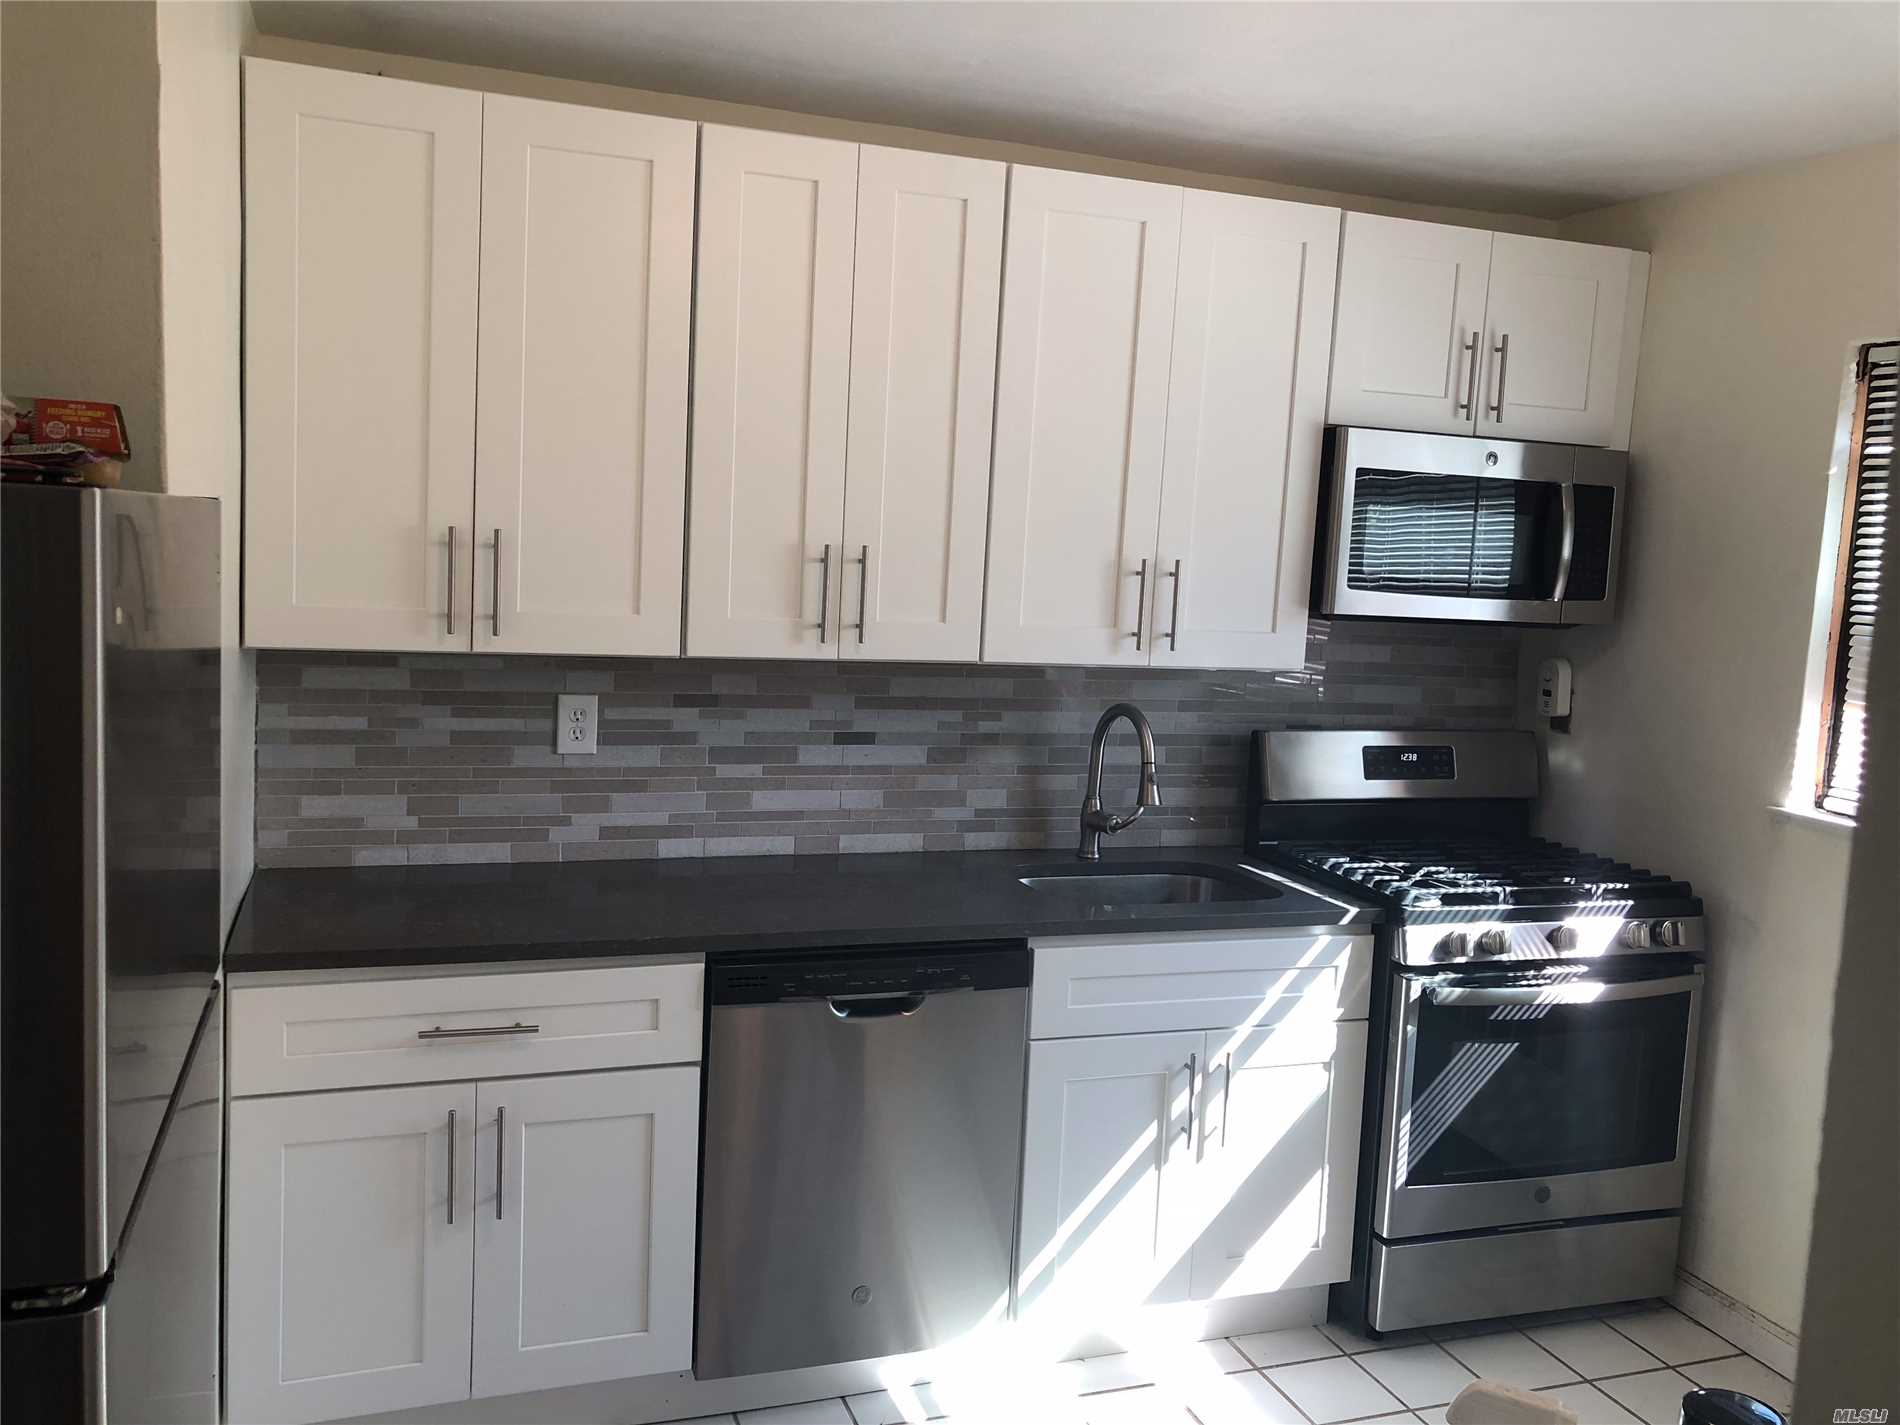 Beautiful 1st Floor Largest Unit & Corner Apartment (Separate Entrance) In Excellent Condition. New Kitchen W/Stainless Steel Appliances & Quartz Counter Tops. New Tiles, Lovely Hardwood Floors Throughout! Very Sunny Apt W/ Windows On All 3 Sides, Plus Spacious Rooms Throughout! 2 Parking Space Included, Pets Allowed. Convenient To Transportation, Shopping, And Alley Pond.